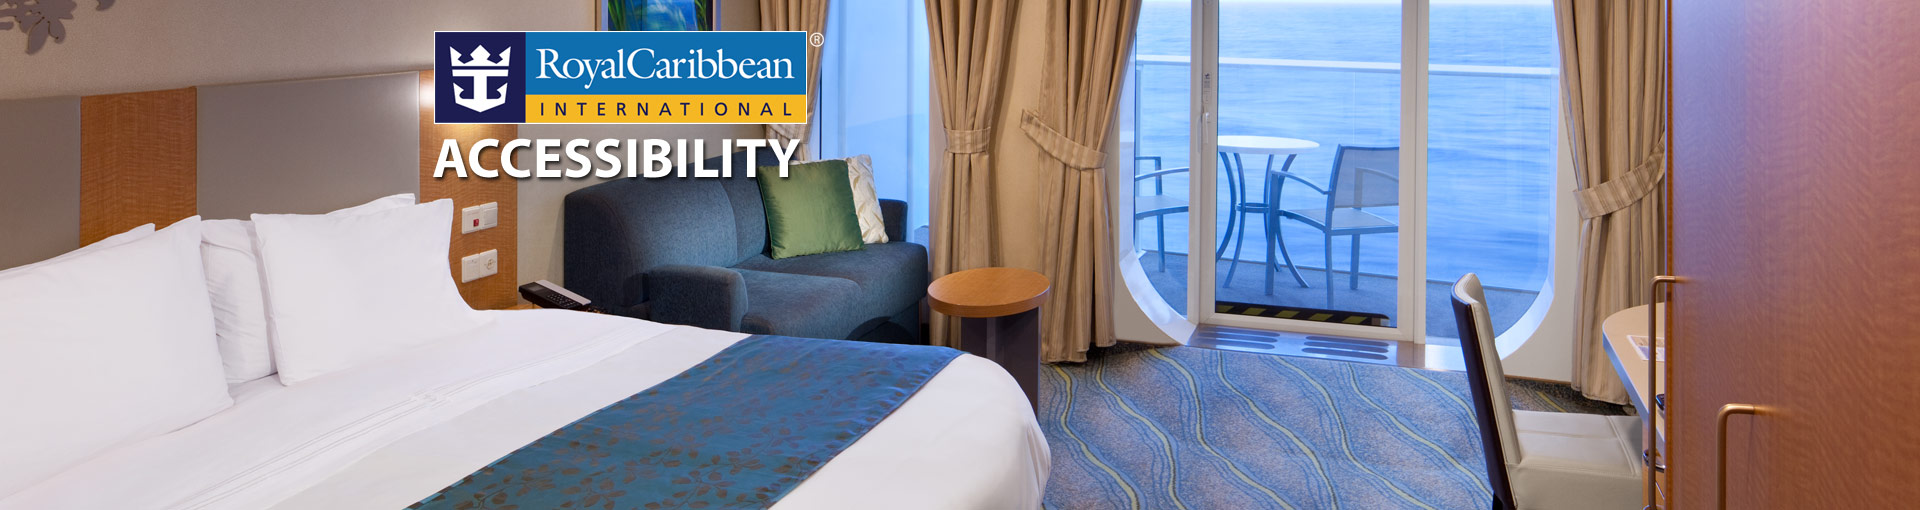 Royal Caribbean Accessibility